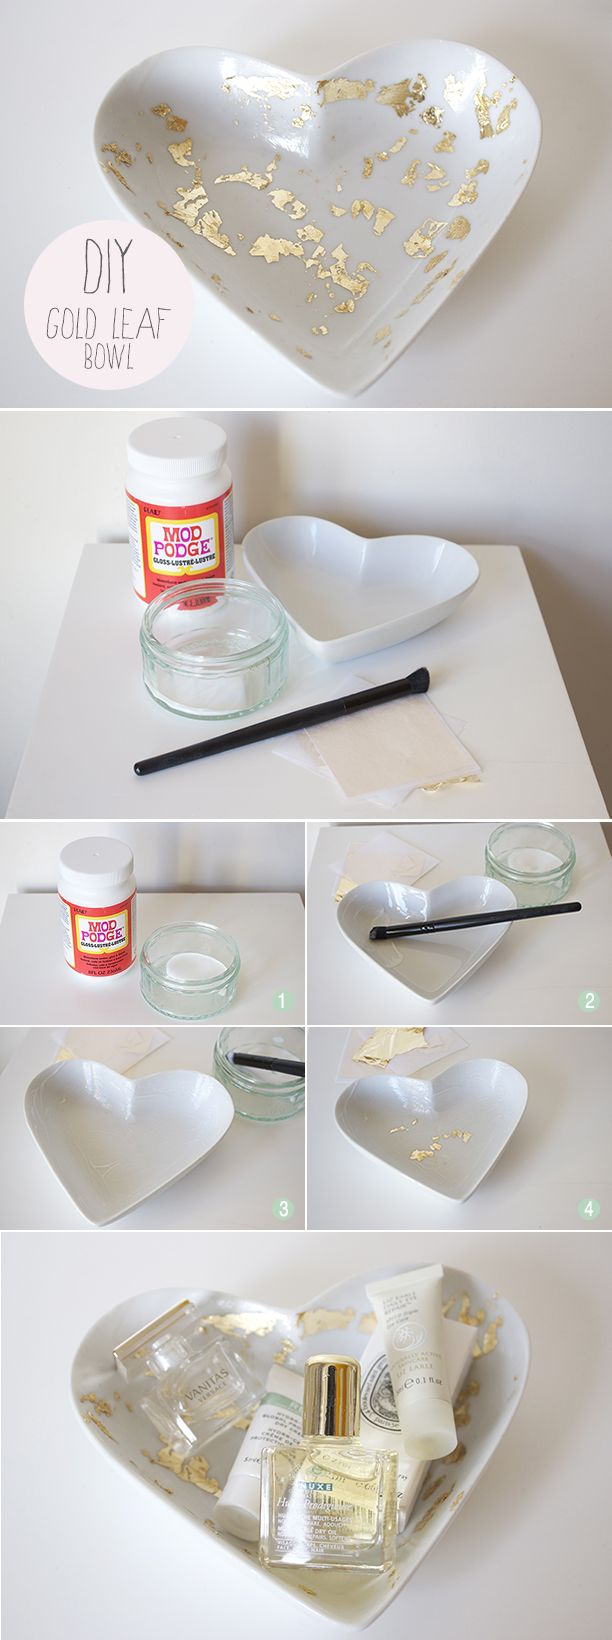 DIY Gold Leaf Bowl. You Need: •Any bowl or ornament •Gold leaf sheets •Mod Podge or similar glue •An old brush •Mixing bowl.  Pour a small amount of Mod Podge in to your mixing bowl, this will be used to cover your bowl and will dry clear later. Use an old brush to completely coat your bowl with the glue - we're only leafing the inside of the bowl so only applied glue here. You don't need to be too careful as you won't notice the glue once it has dried.